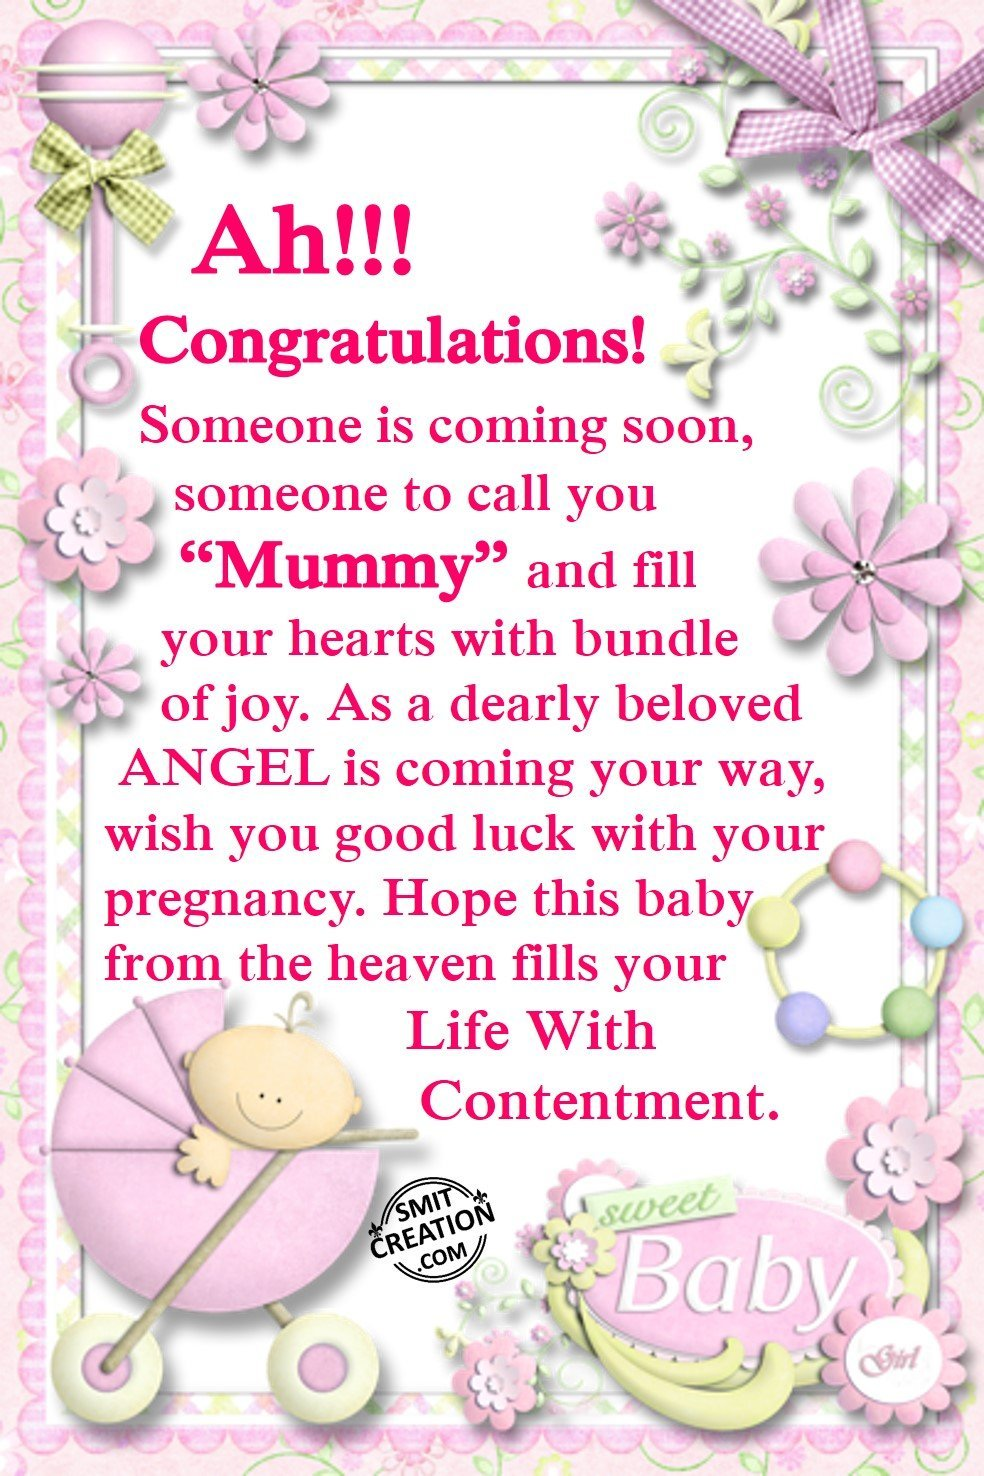 Baby Shower Pictures and Graphics  SmitCreationcom